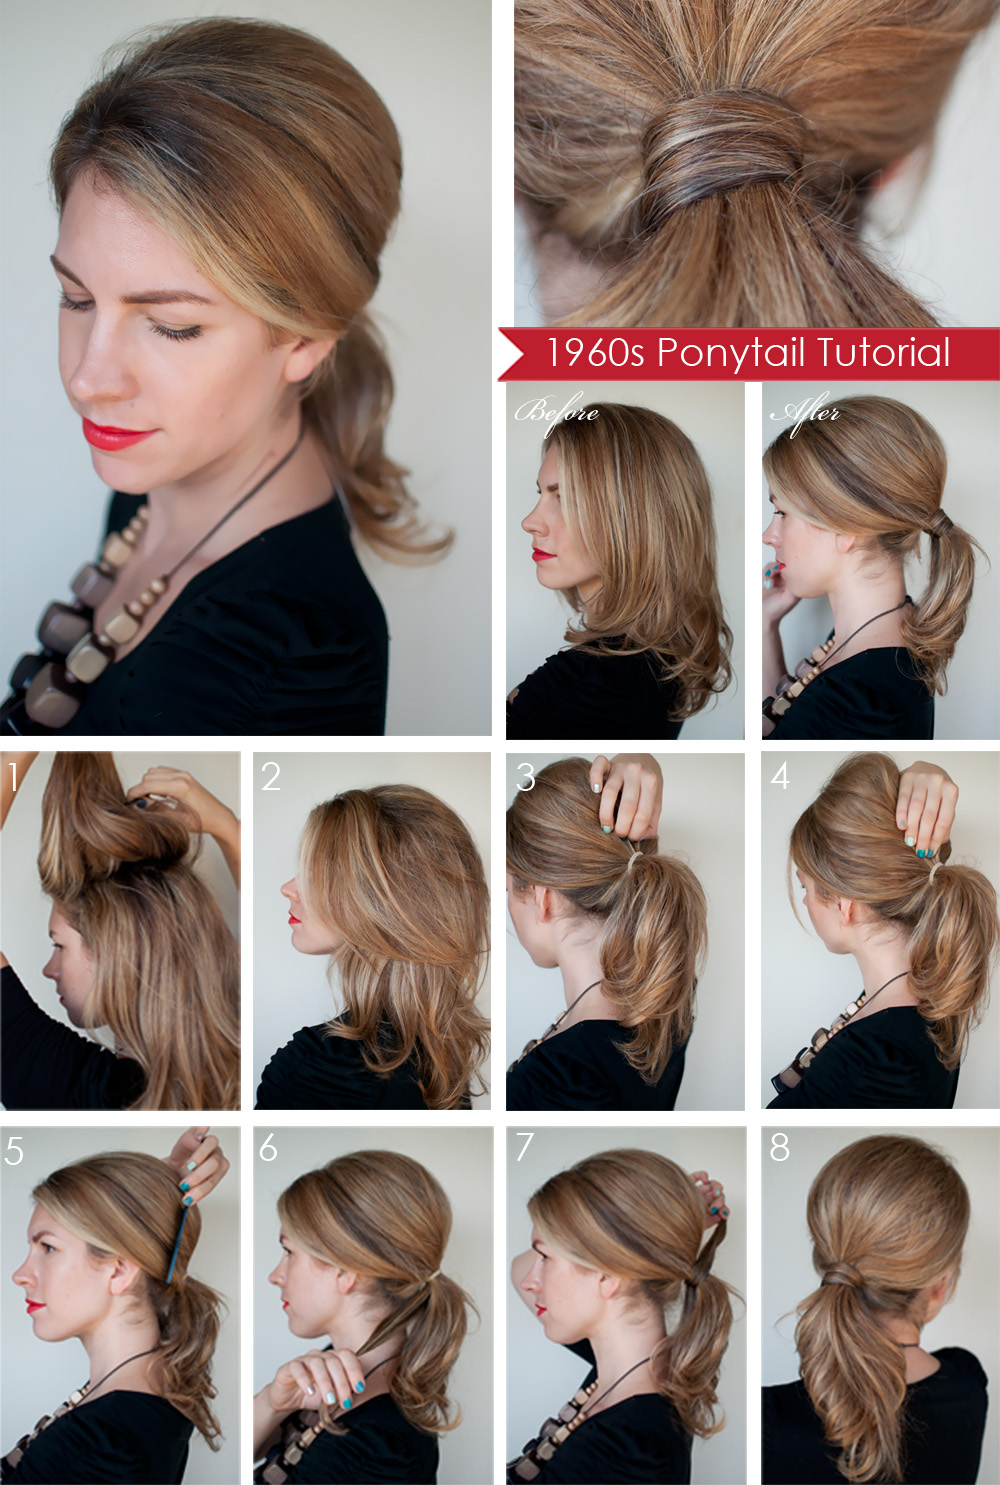 Hairstyle Creator : Hairstyle how to: Create a 1960s style ponytail - Hair Romance